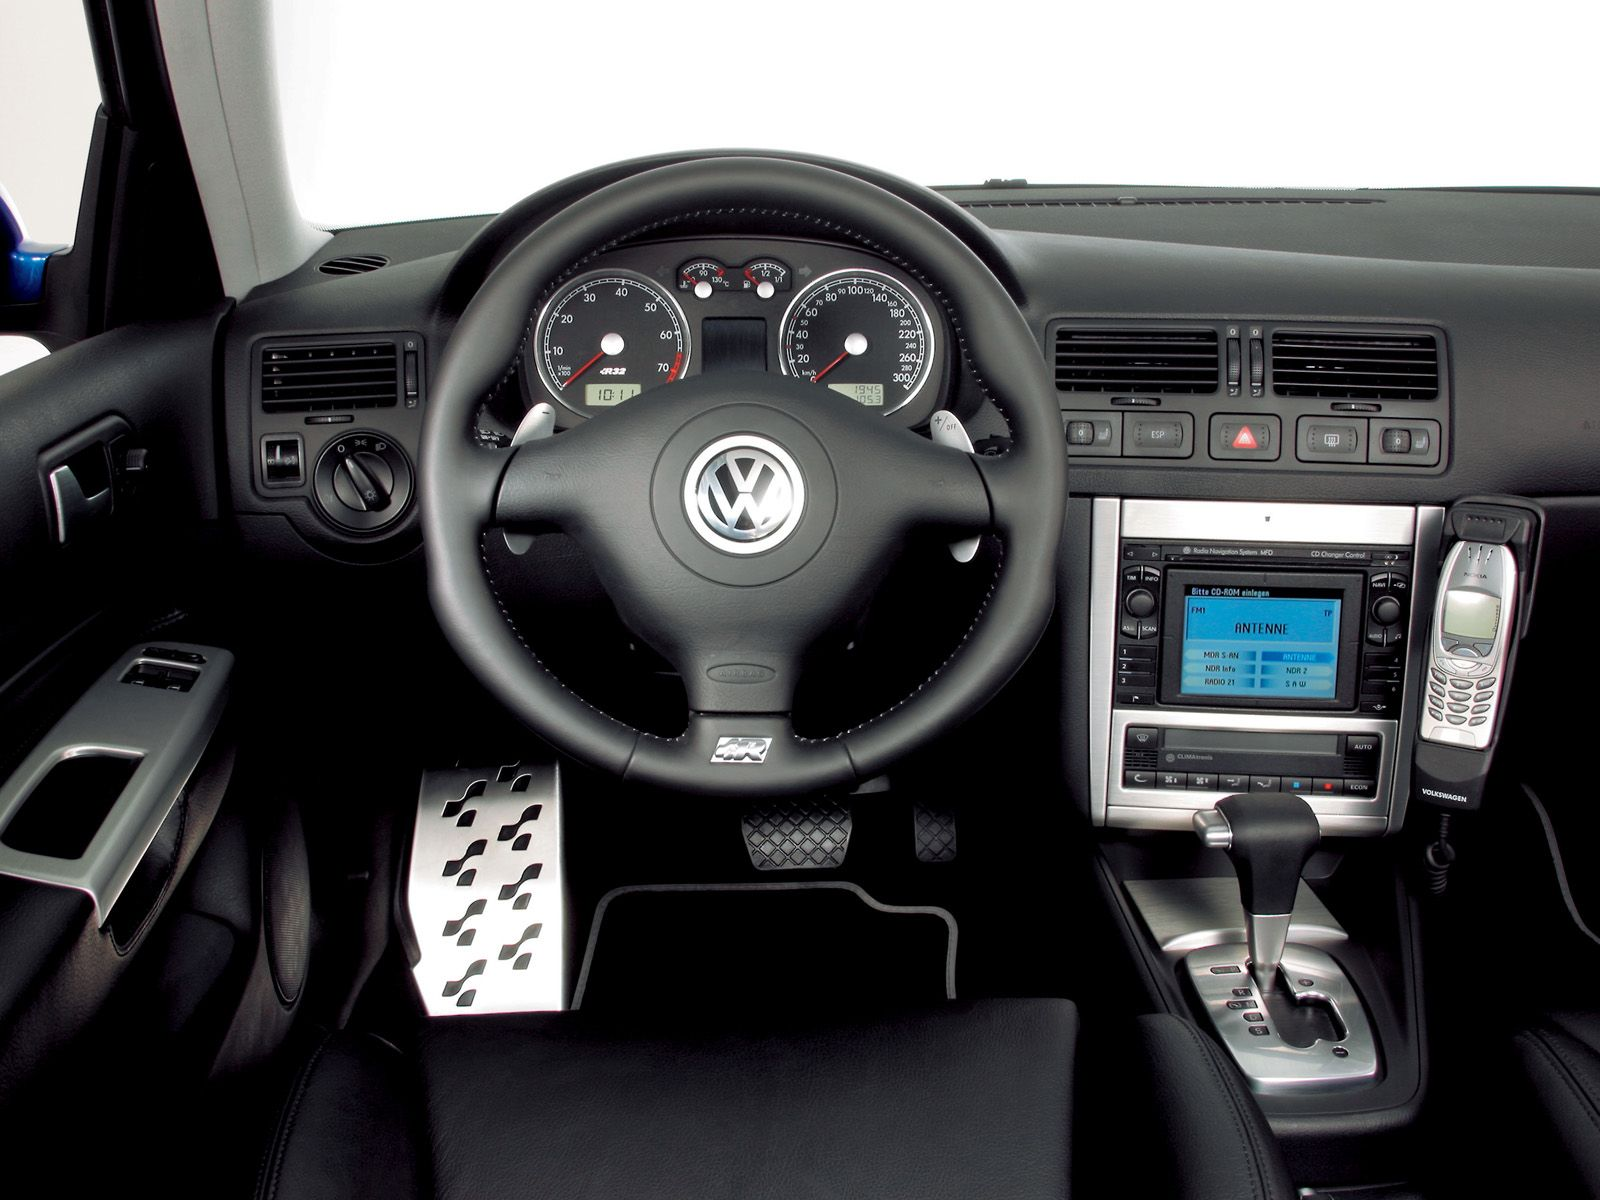 Volkswagen golf photo - 1